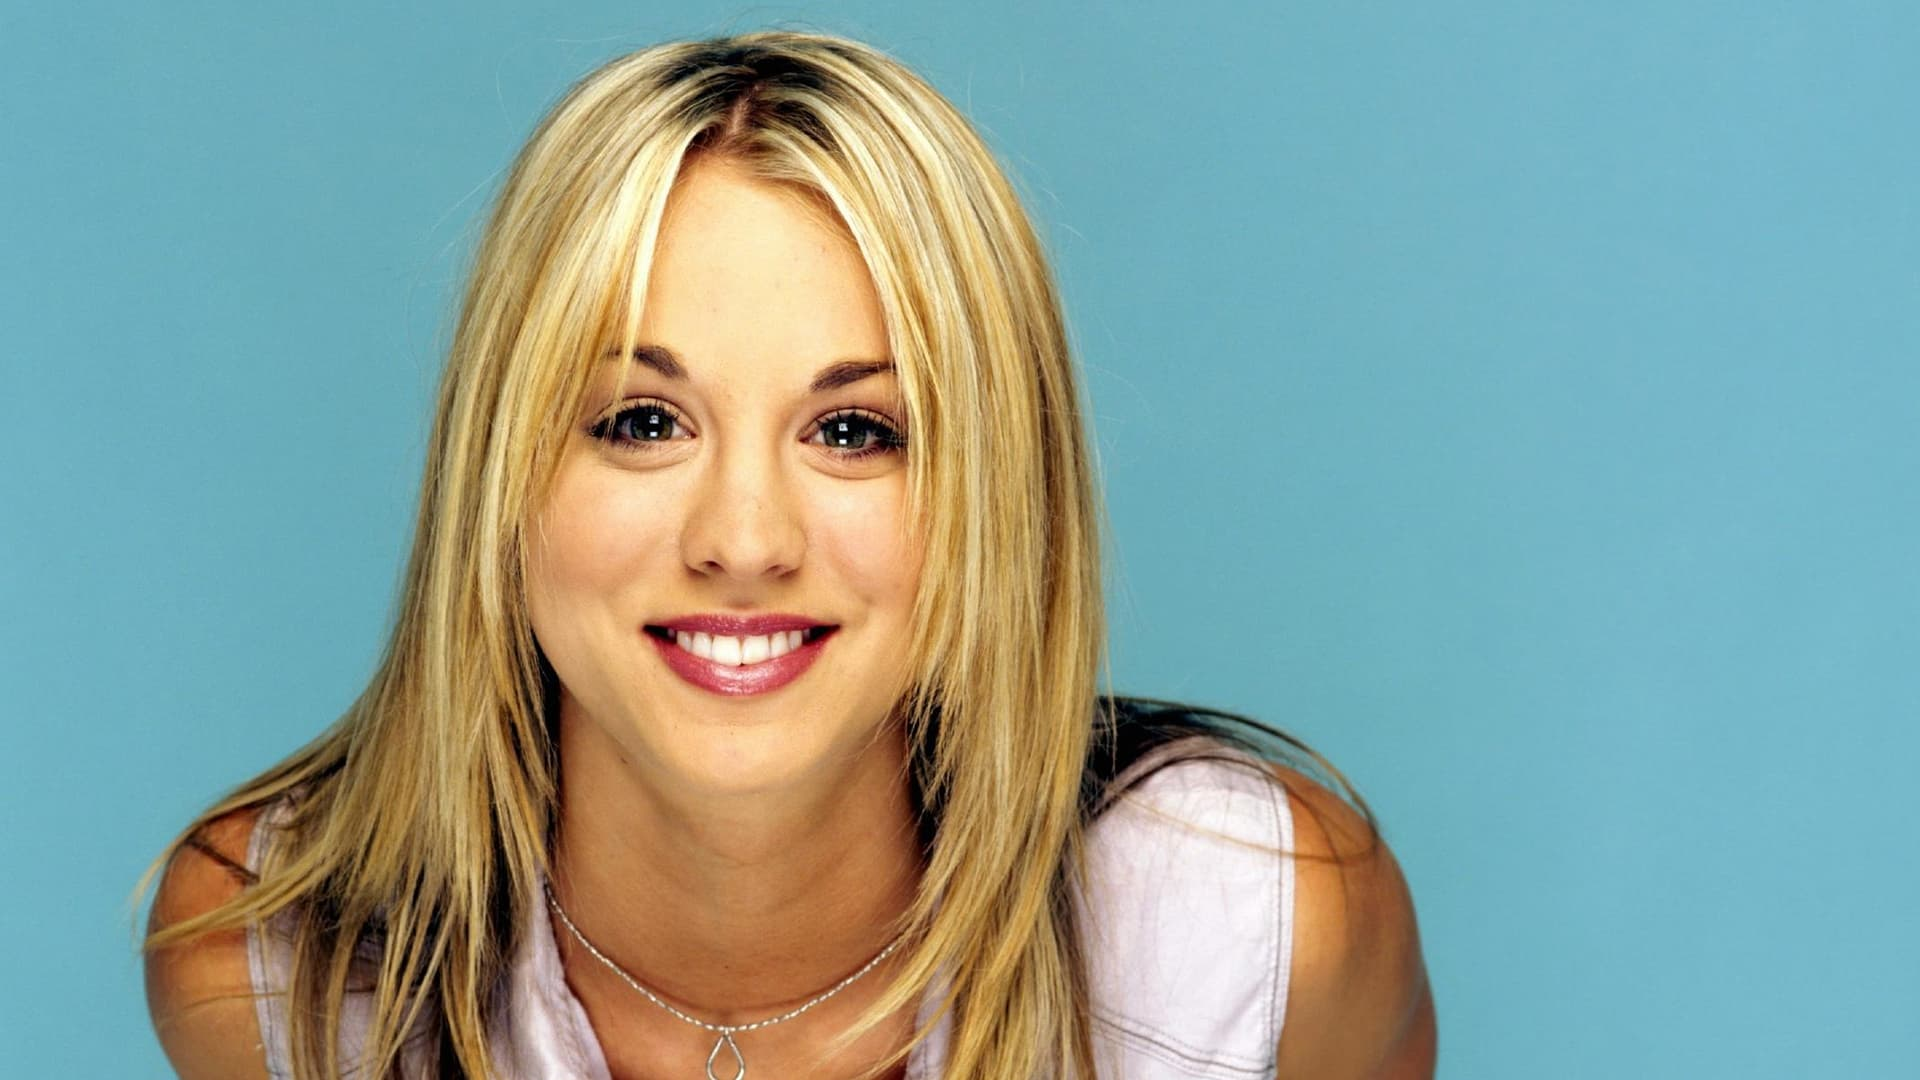 20+ Kaley Cuoco wallpapers High Quality Download